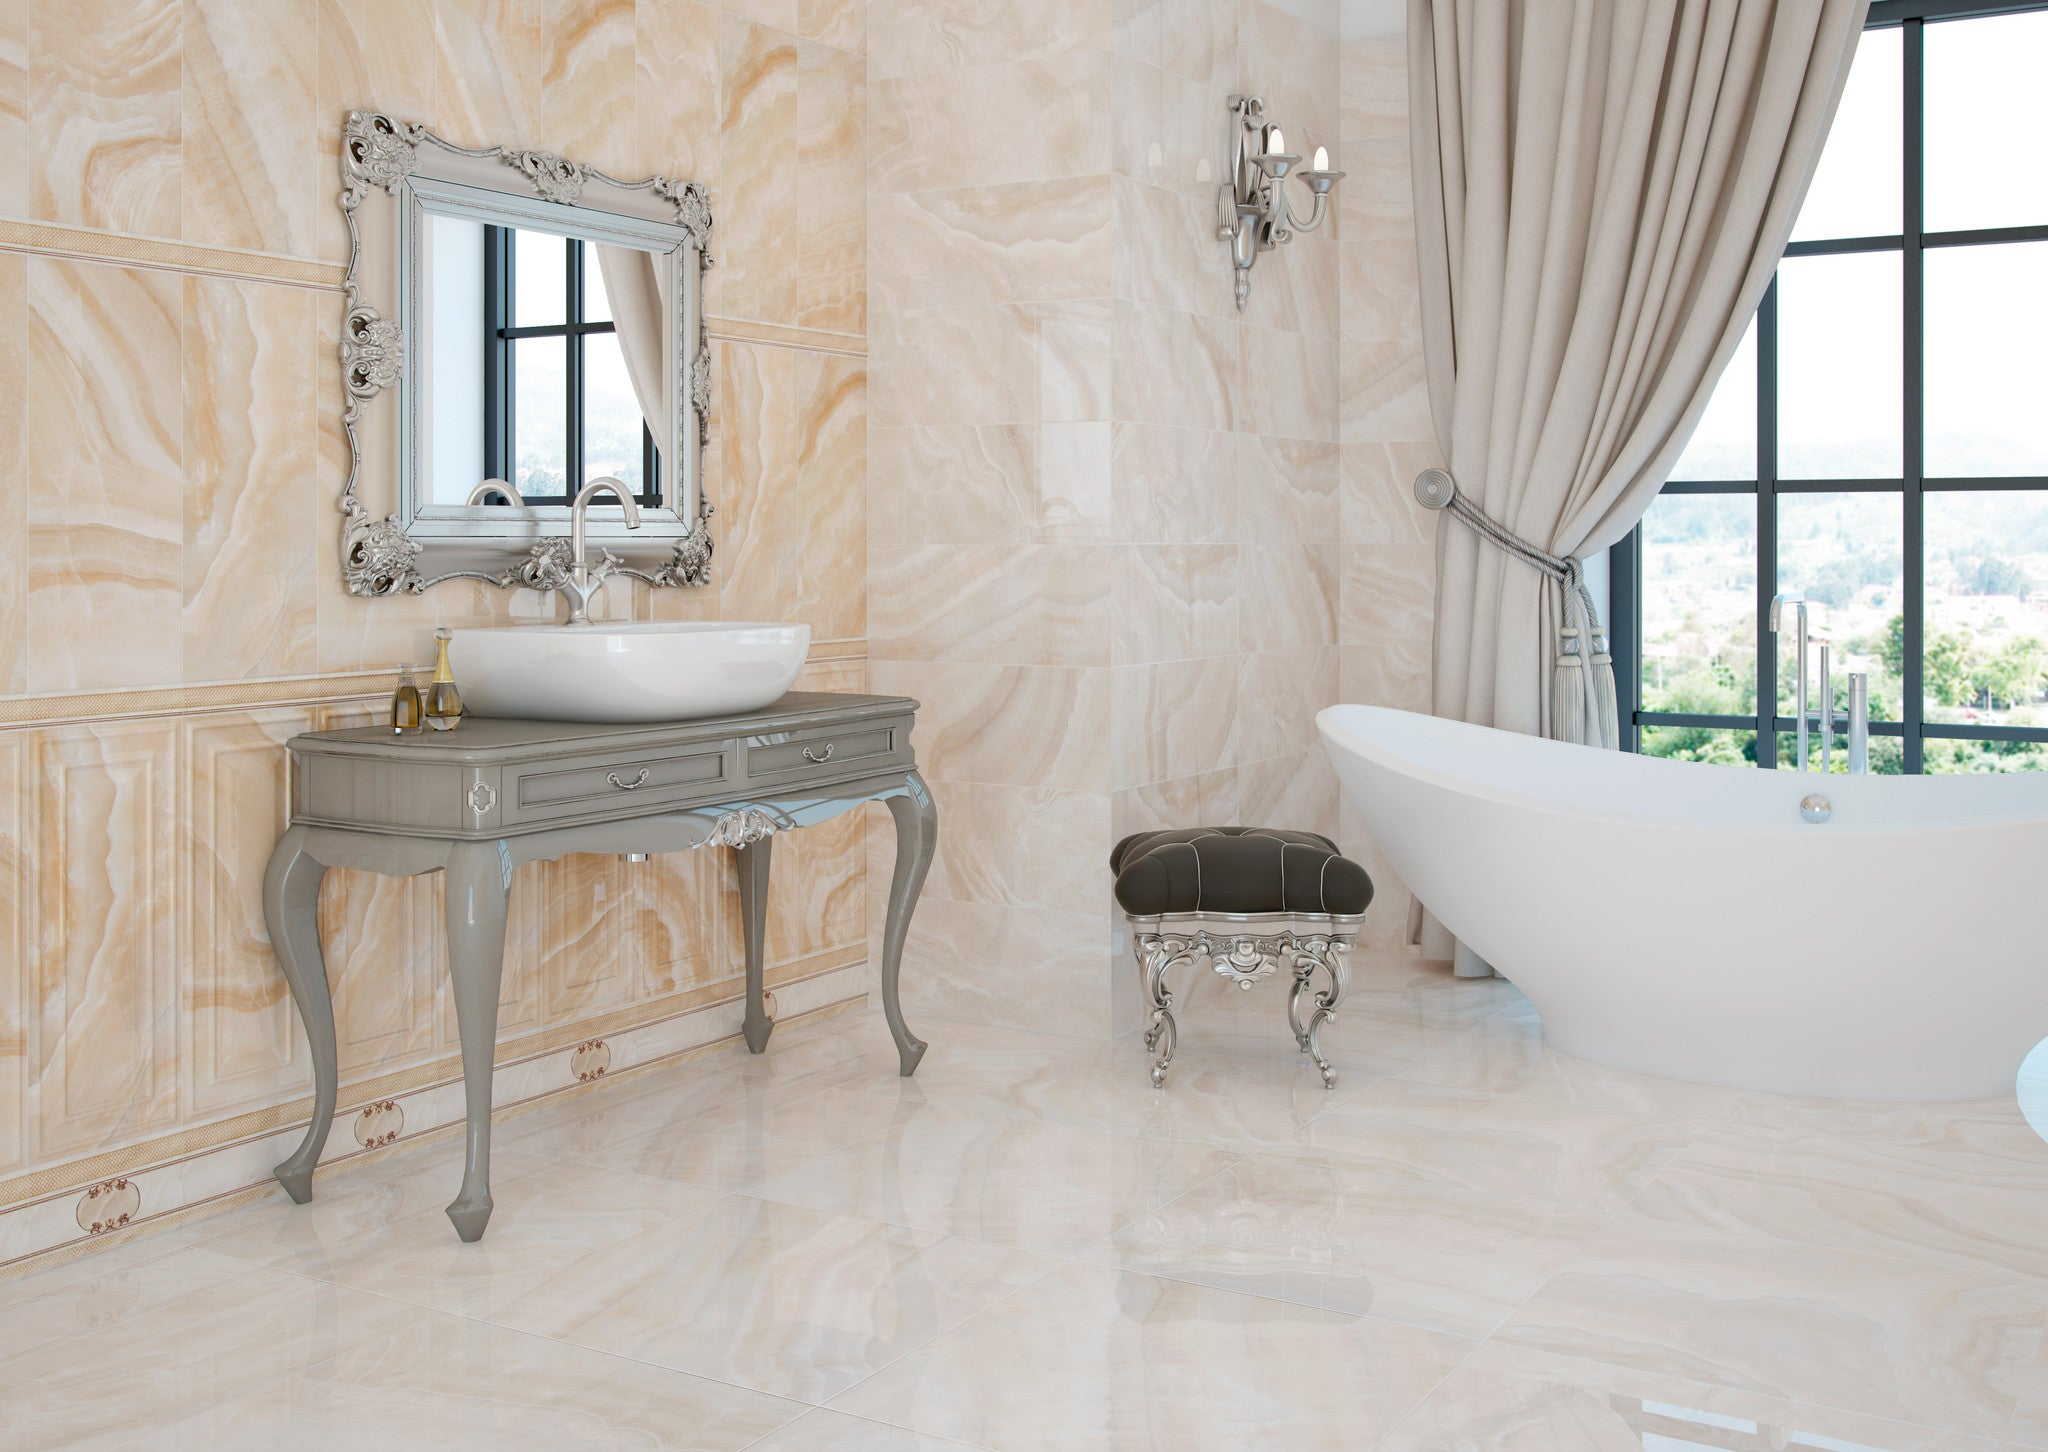 seawood with floor walls floors for tile gallery wood in and peronda nicest foresta porcelain effect tiles view